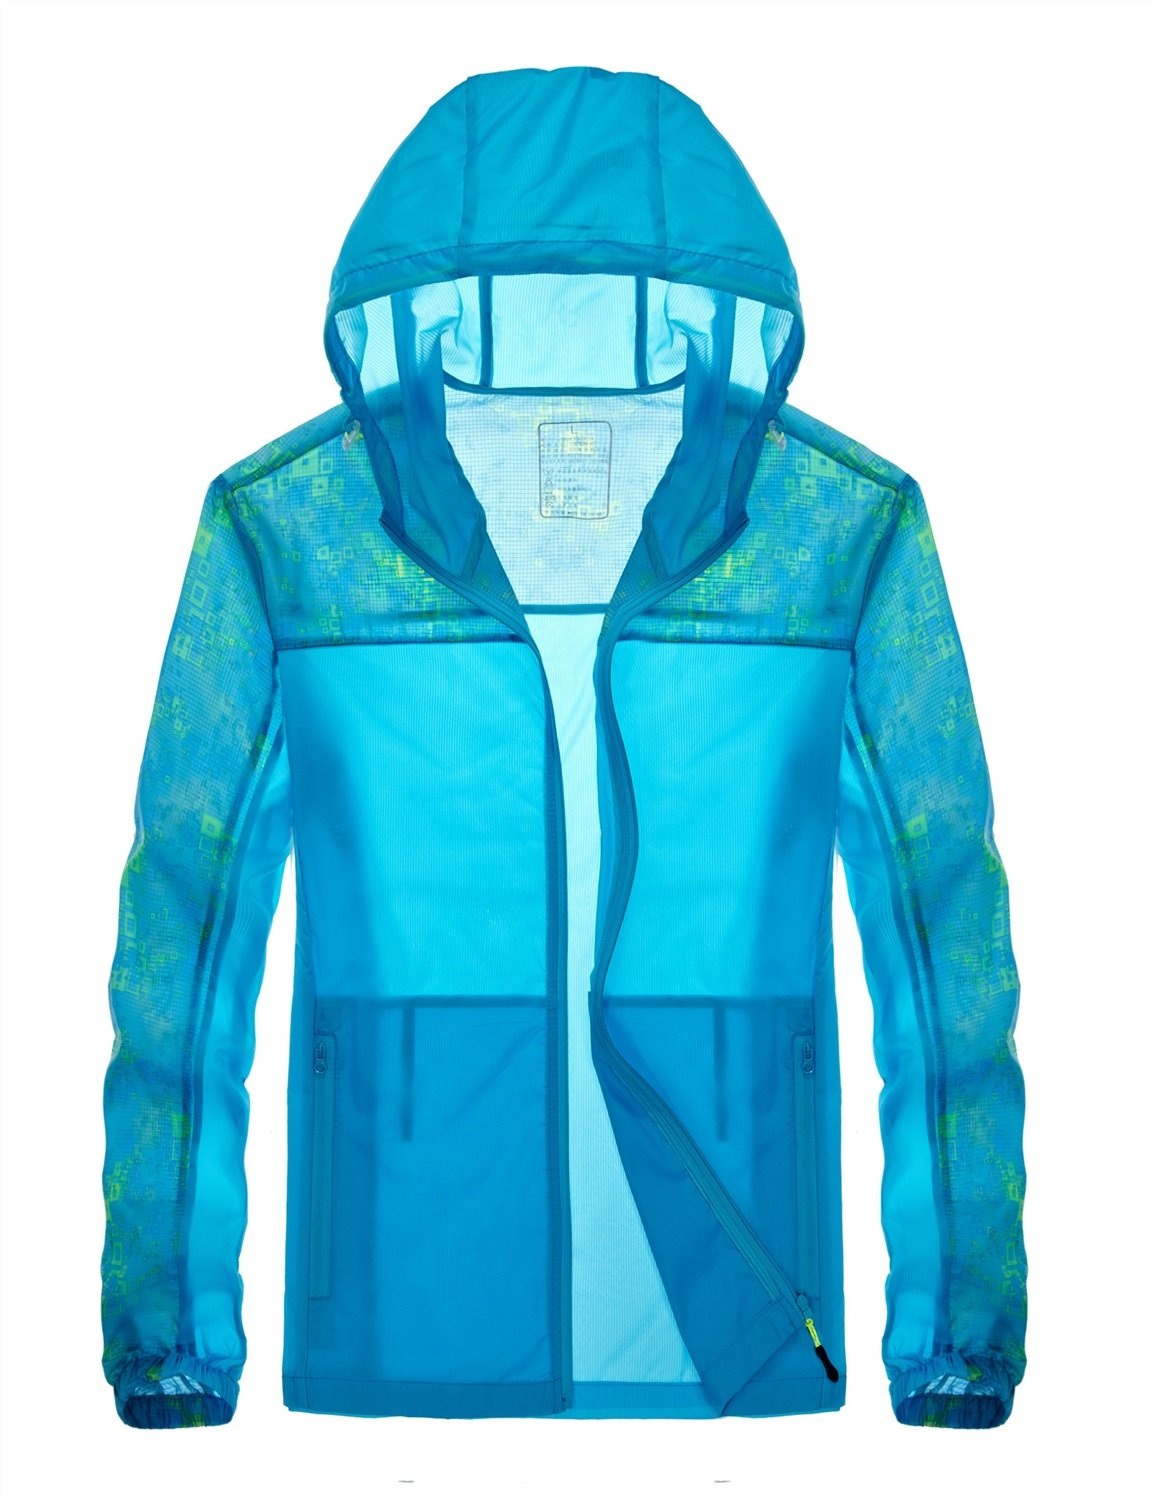 FeN Men's Coats - Summer Quick-drying Sun Protection Clothing Breathable Sports Fashion Jackets Casual Comfortable Long-Sleeved Outerwear (Color : 2, Size : XL)